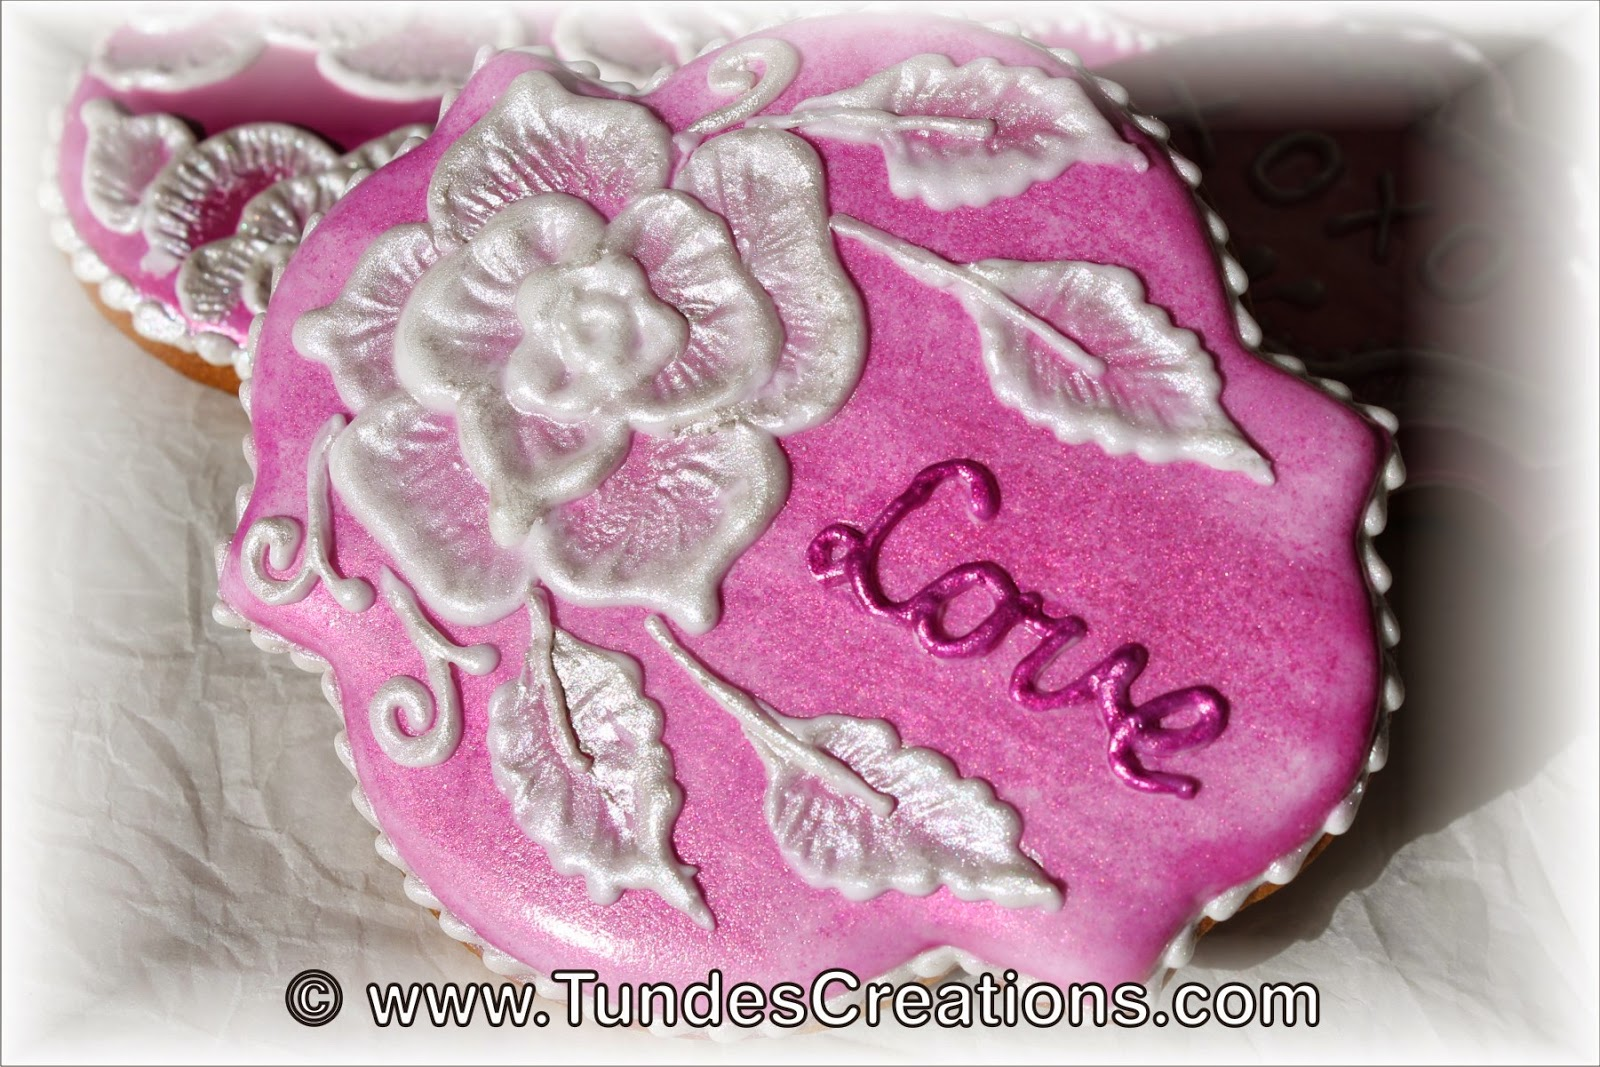 Valentine's cookies with brush embroidery and natural food colors